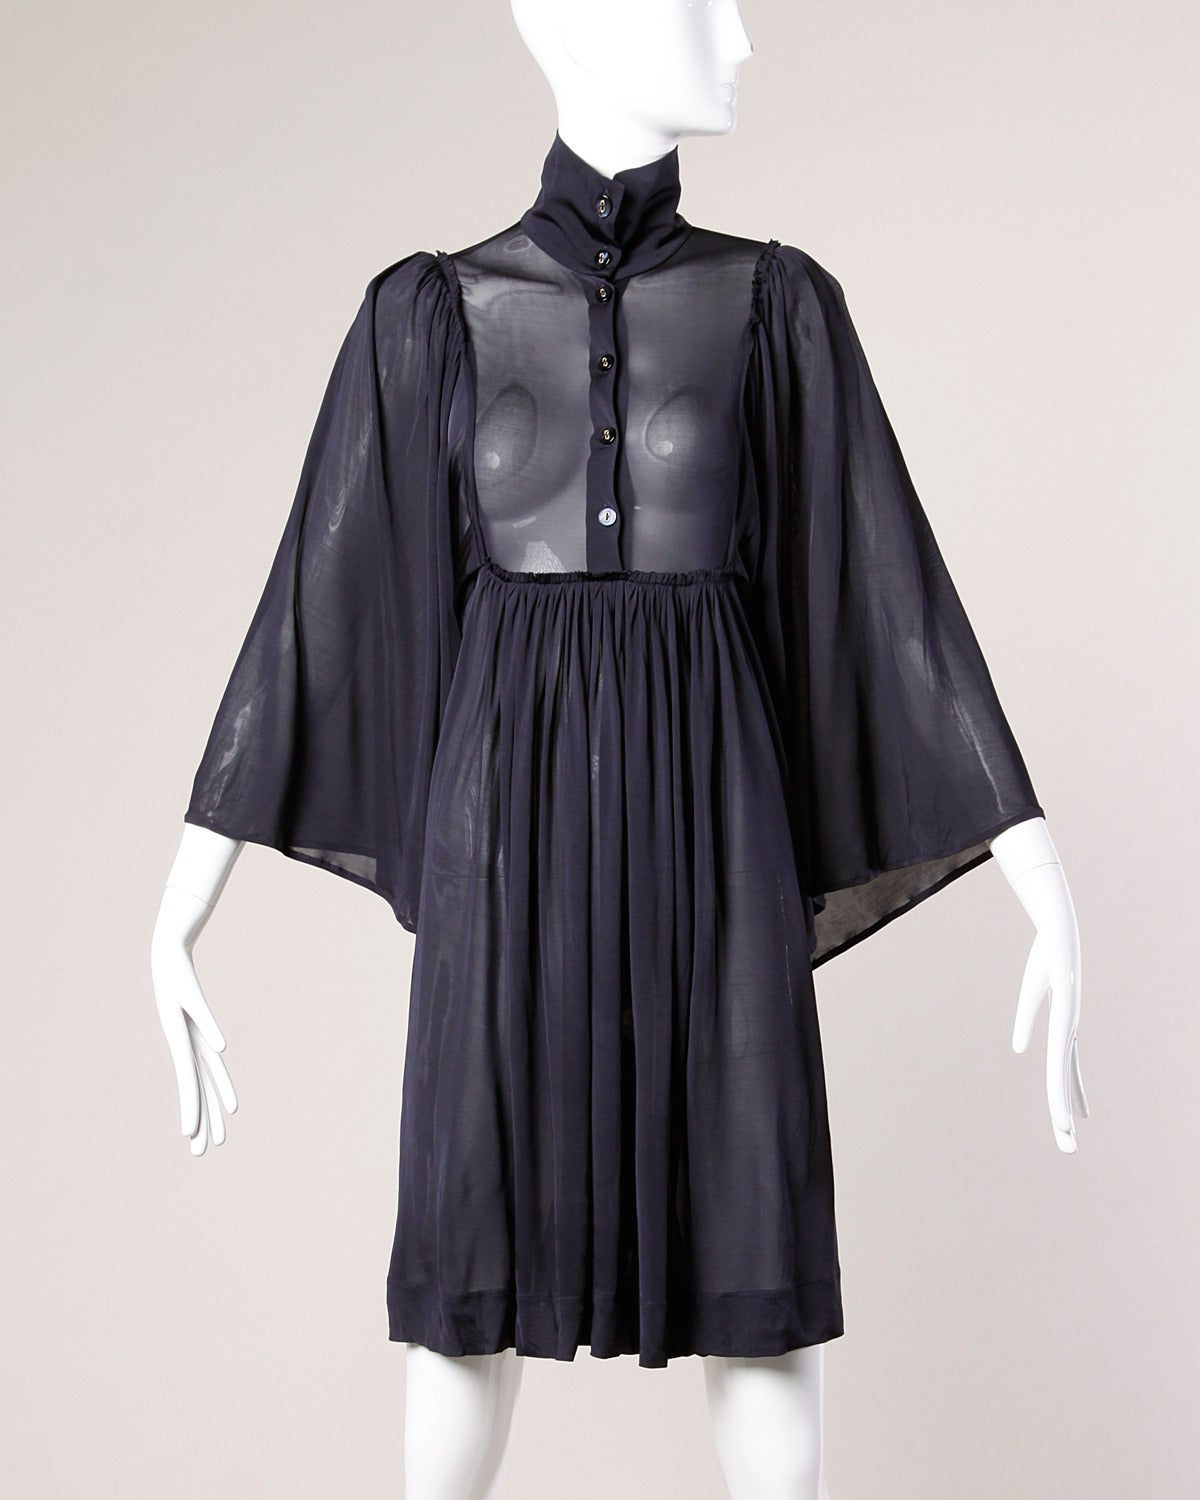 Stella McCartney Recent Sheer Navy Blue Dress with Angel Batwing Sleeves 4